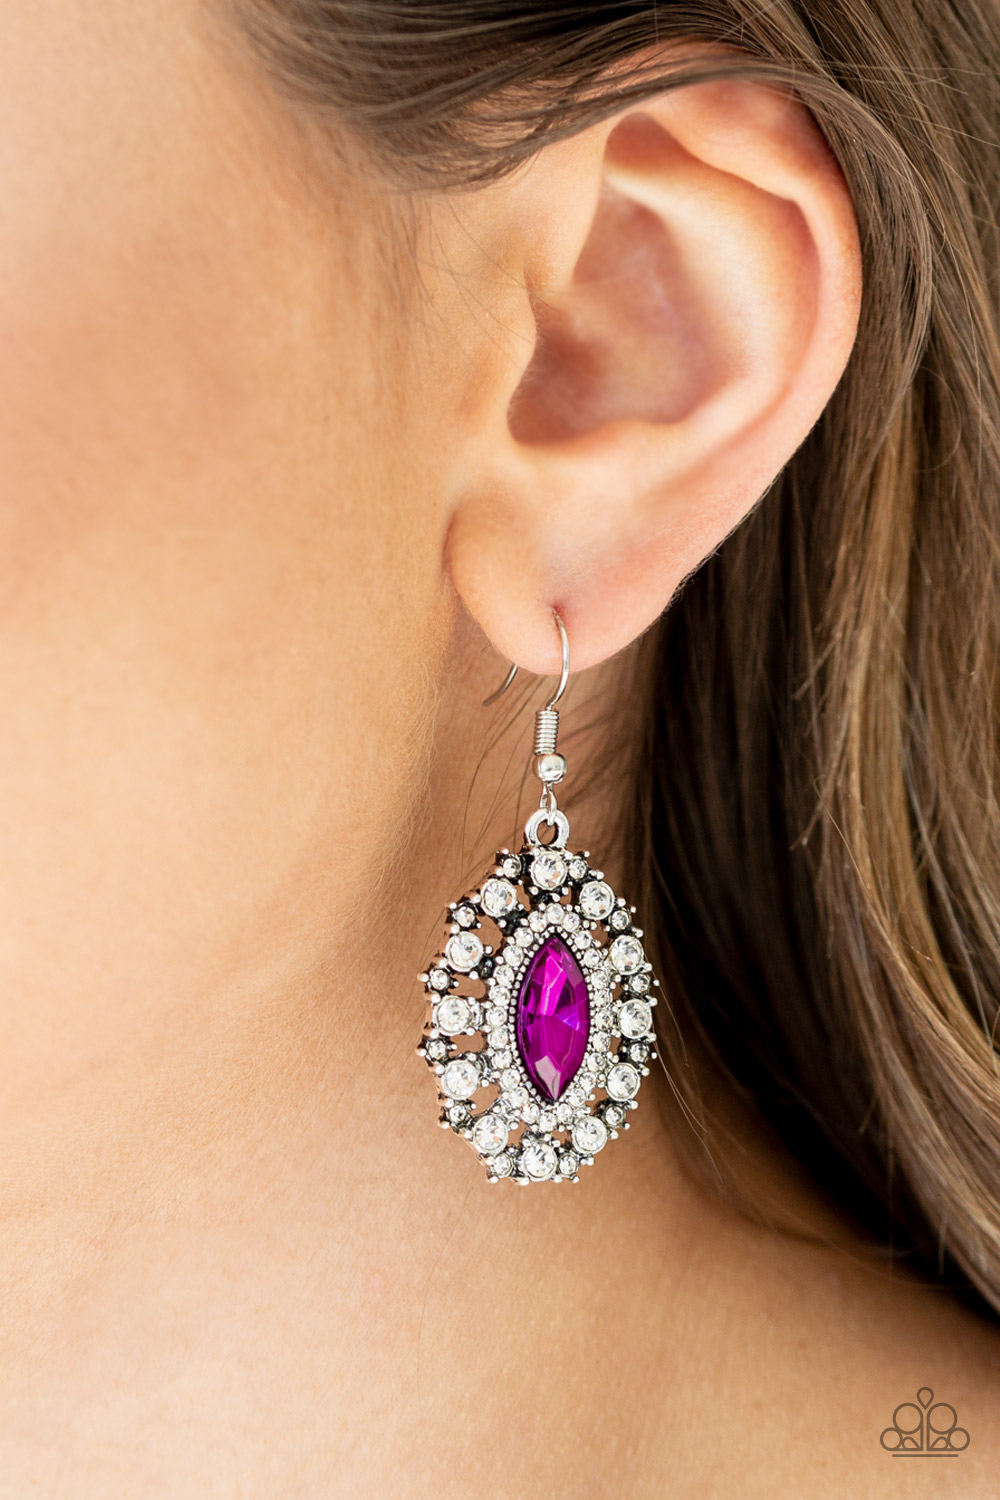 Stunning Pink Earrings with Rhinestones by Paparazzi $5 my-bling.com